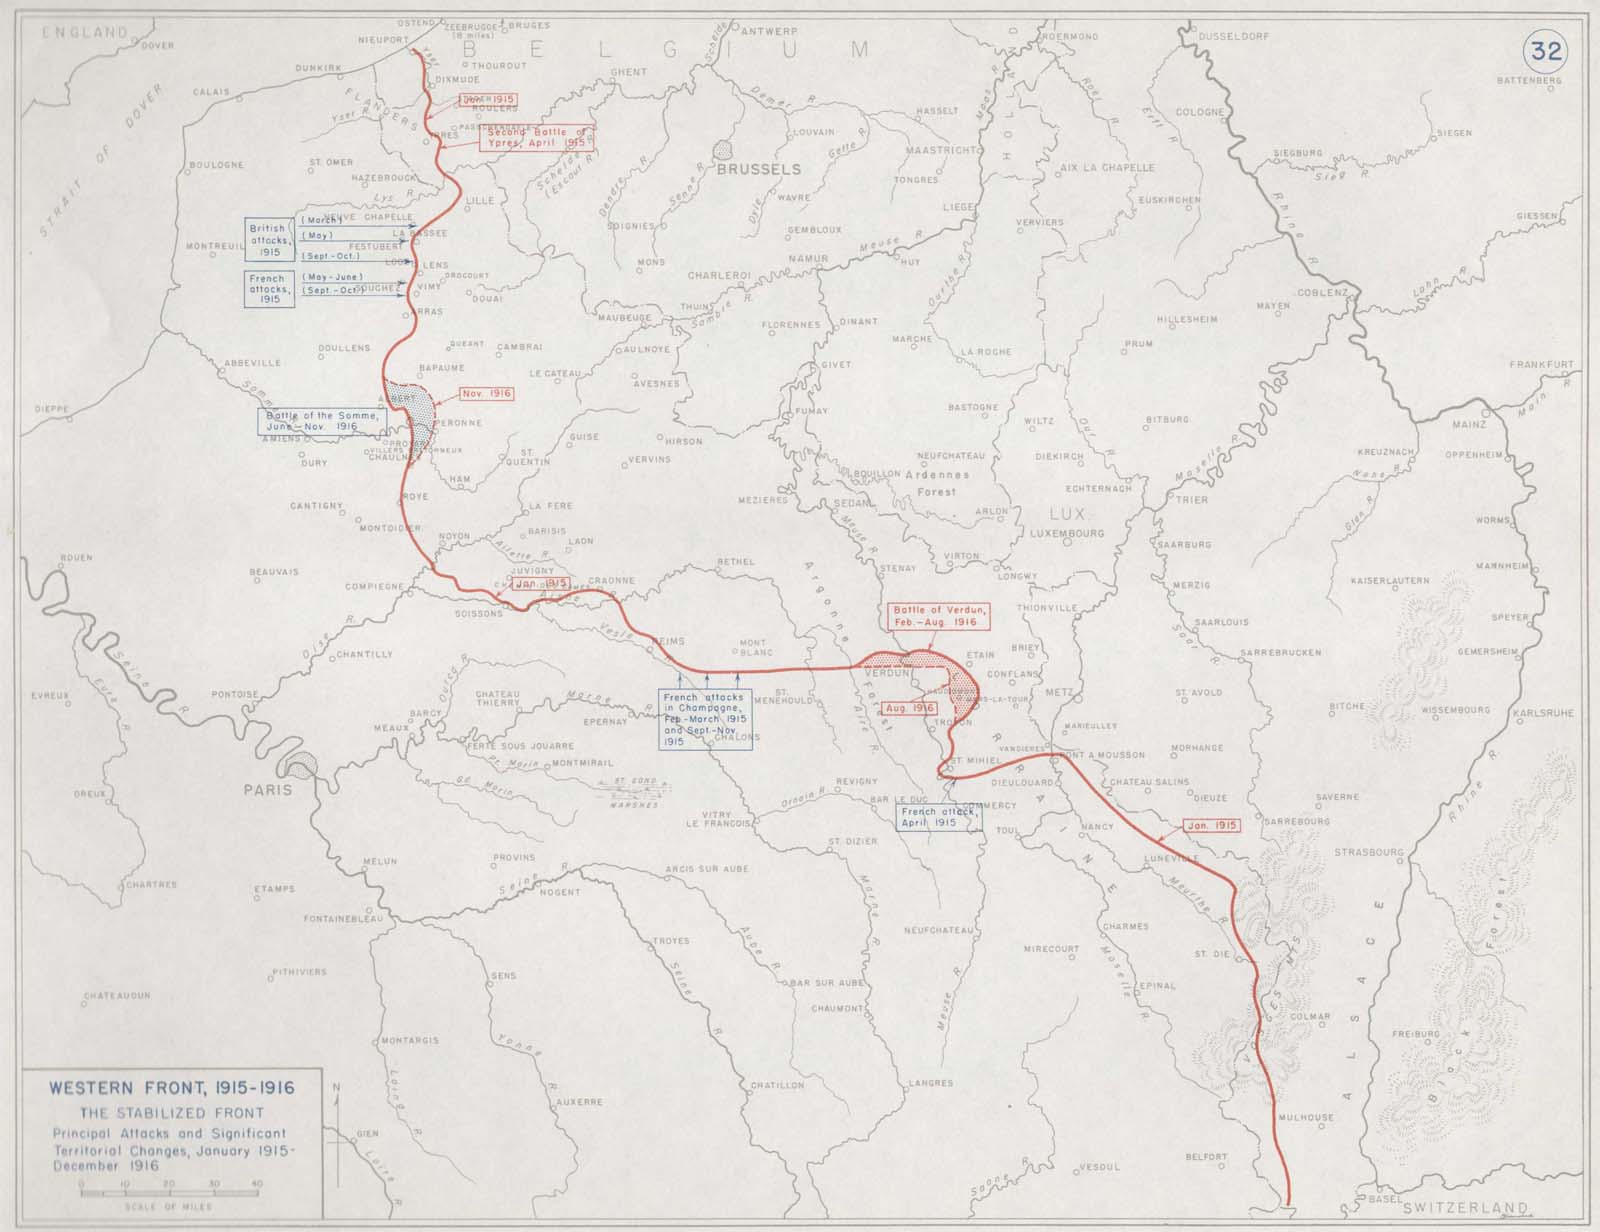 Need a map showing where in Europe the trenches were